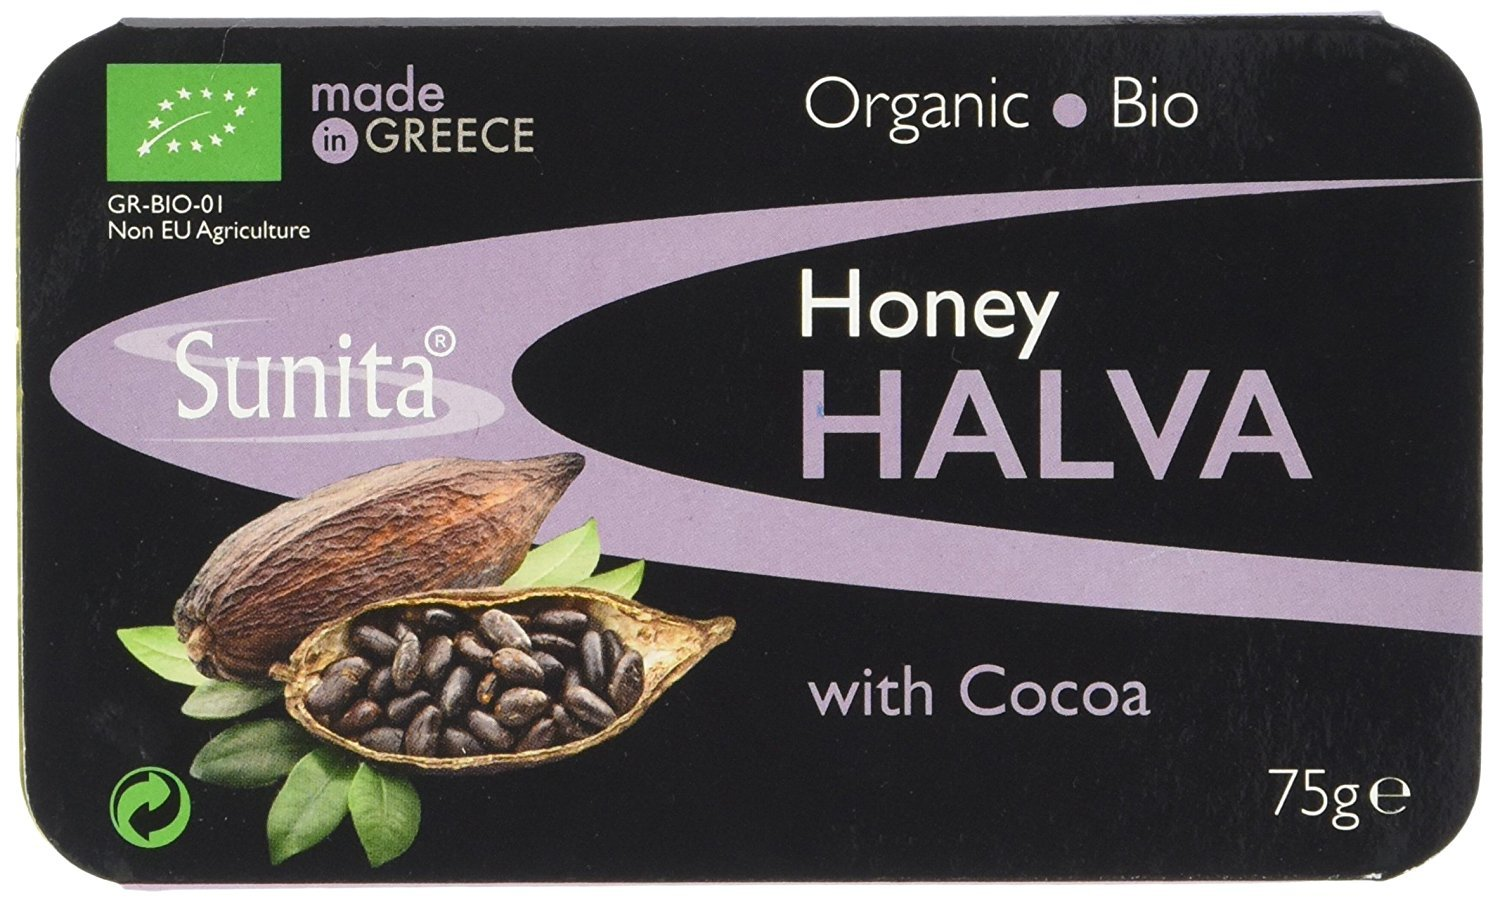 (12 PACK) - Sunita - Org Dark Chocolate Halva | 75g | 12 PACK BUNDLE by Sunita Enterprises